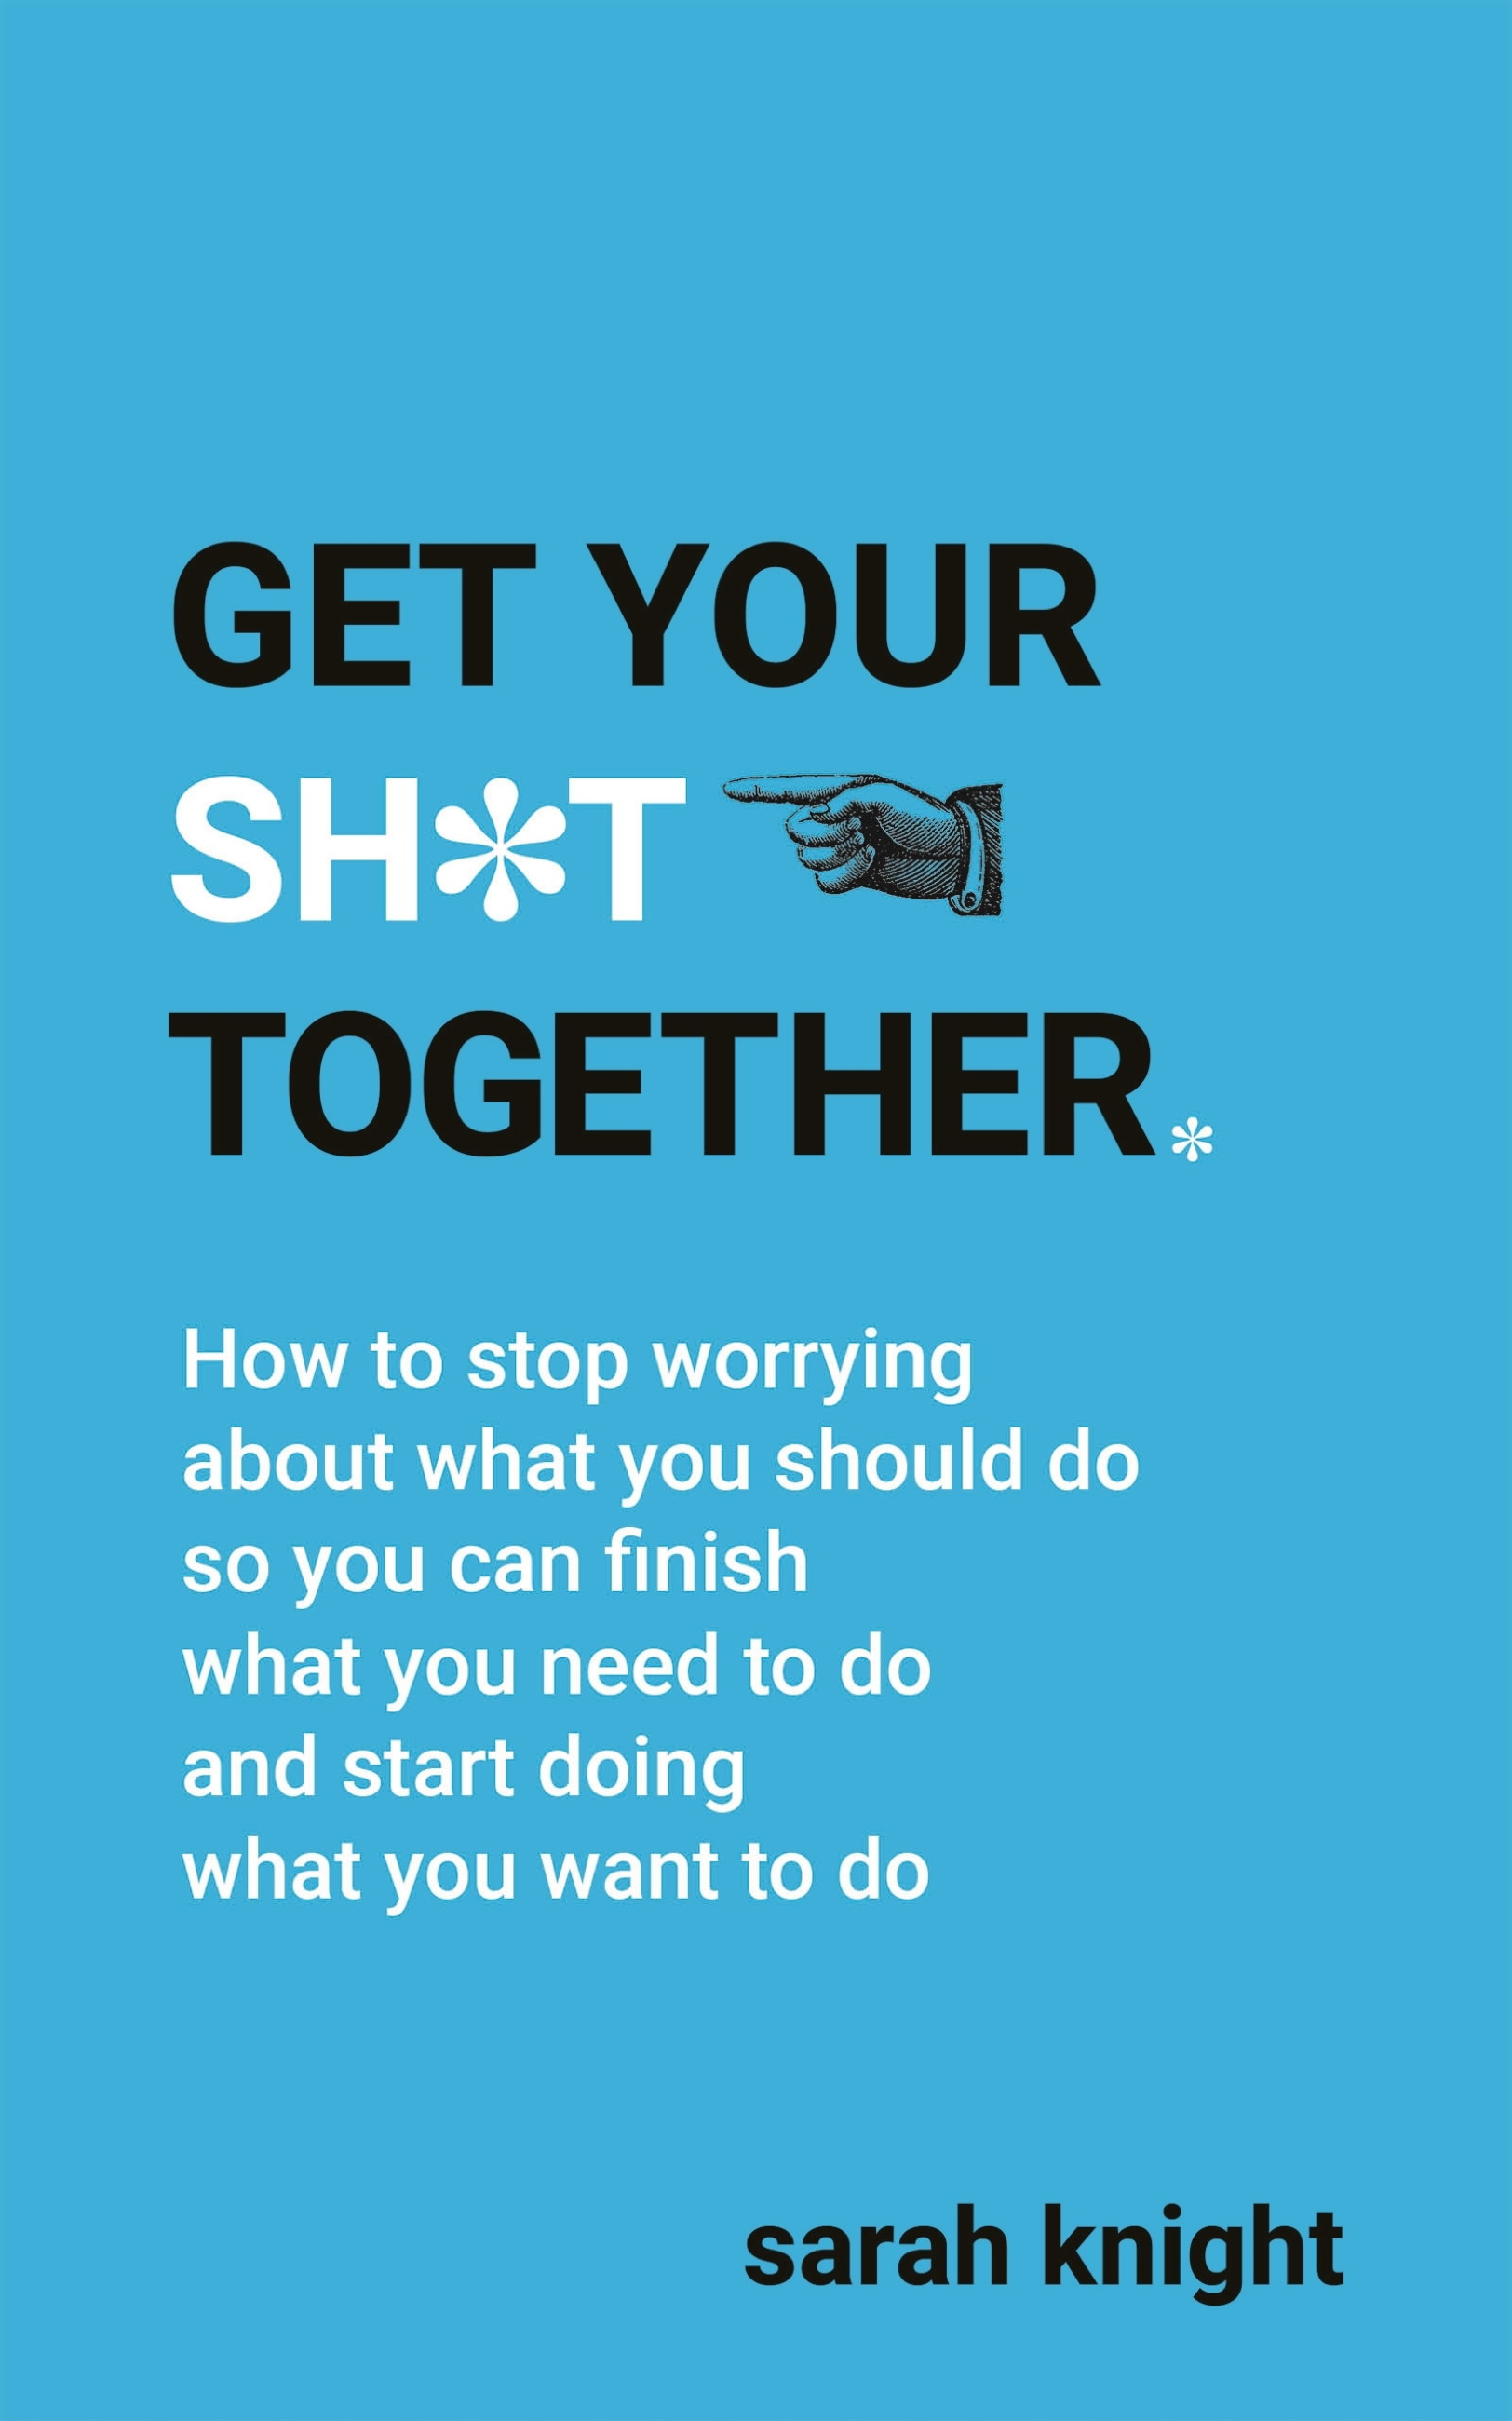 Download Ebook Get Your Sh*t Together by Sarah Knight Pdf